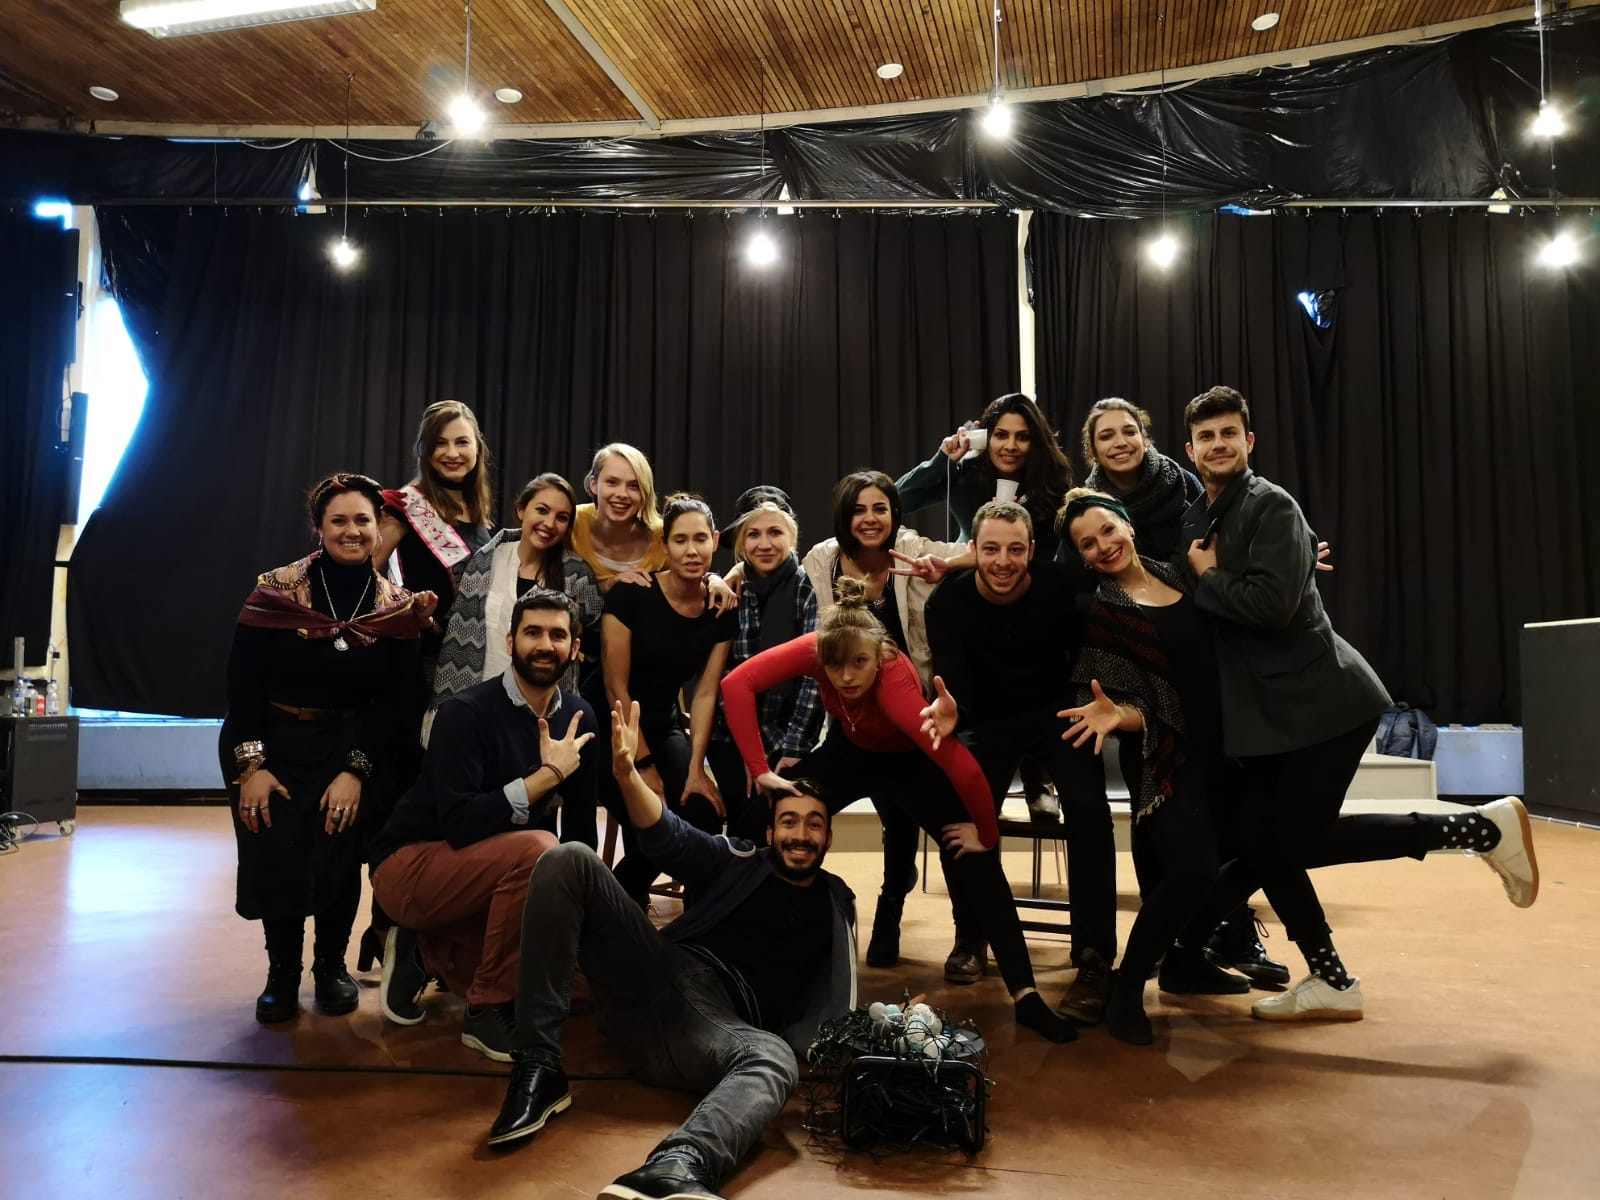 """Photo from the show """"The Skin of our Teeth"""". A group of people pose for the picture. Most of them wear black. At the back, there is a black curtain"""